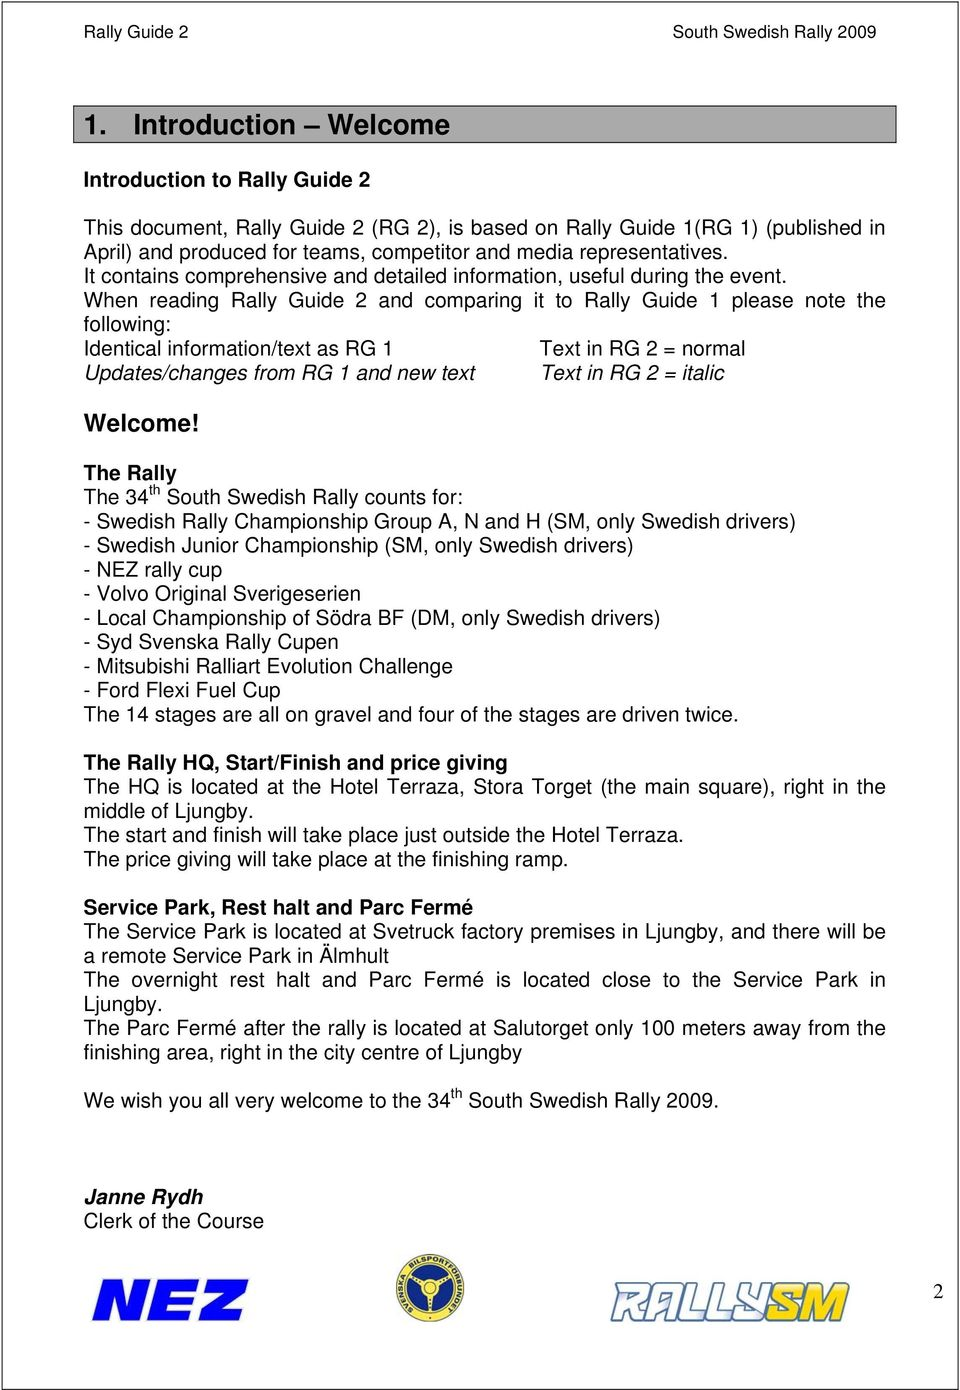 When reading Rally Guide 2 and comparing it to Rally Guide 1 please note the following: Identical information/text as RG 1 Text in RG 2 = normal Updates/changes from RG 1 and new text Text in RG 2 =